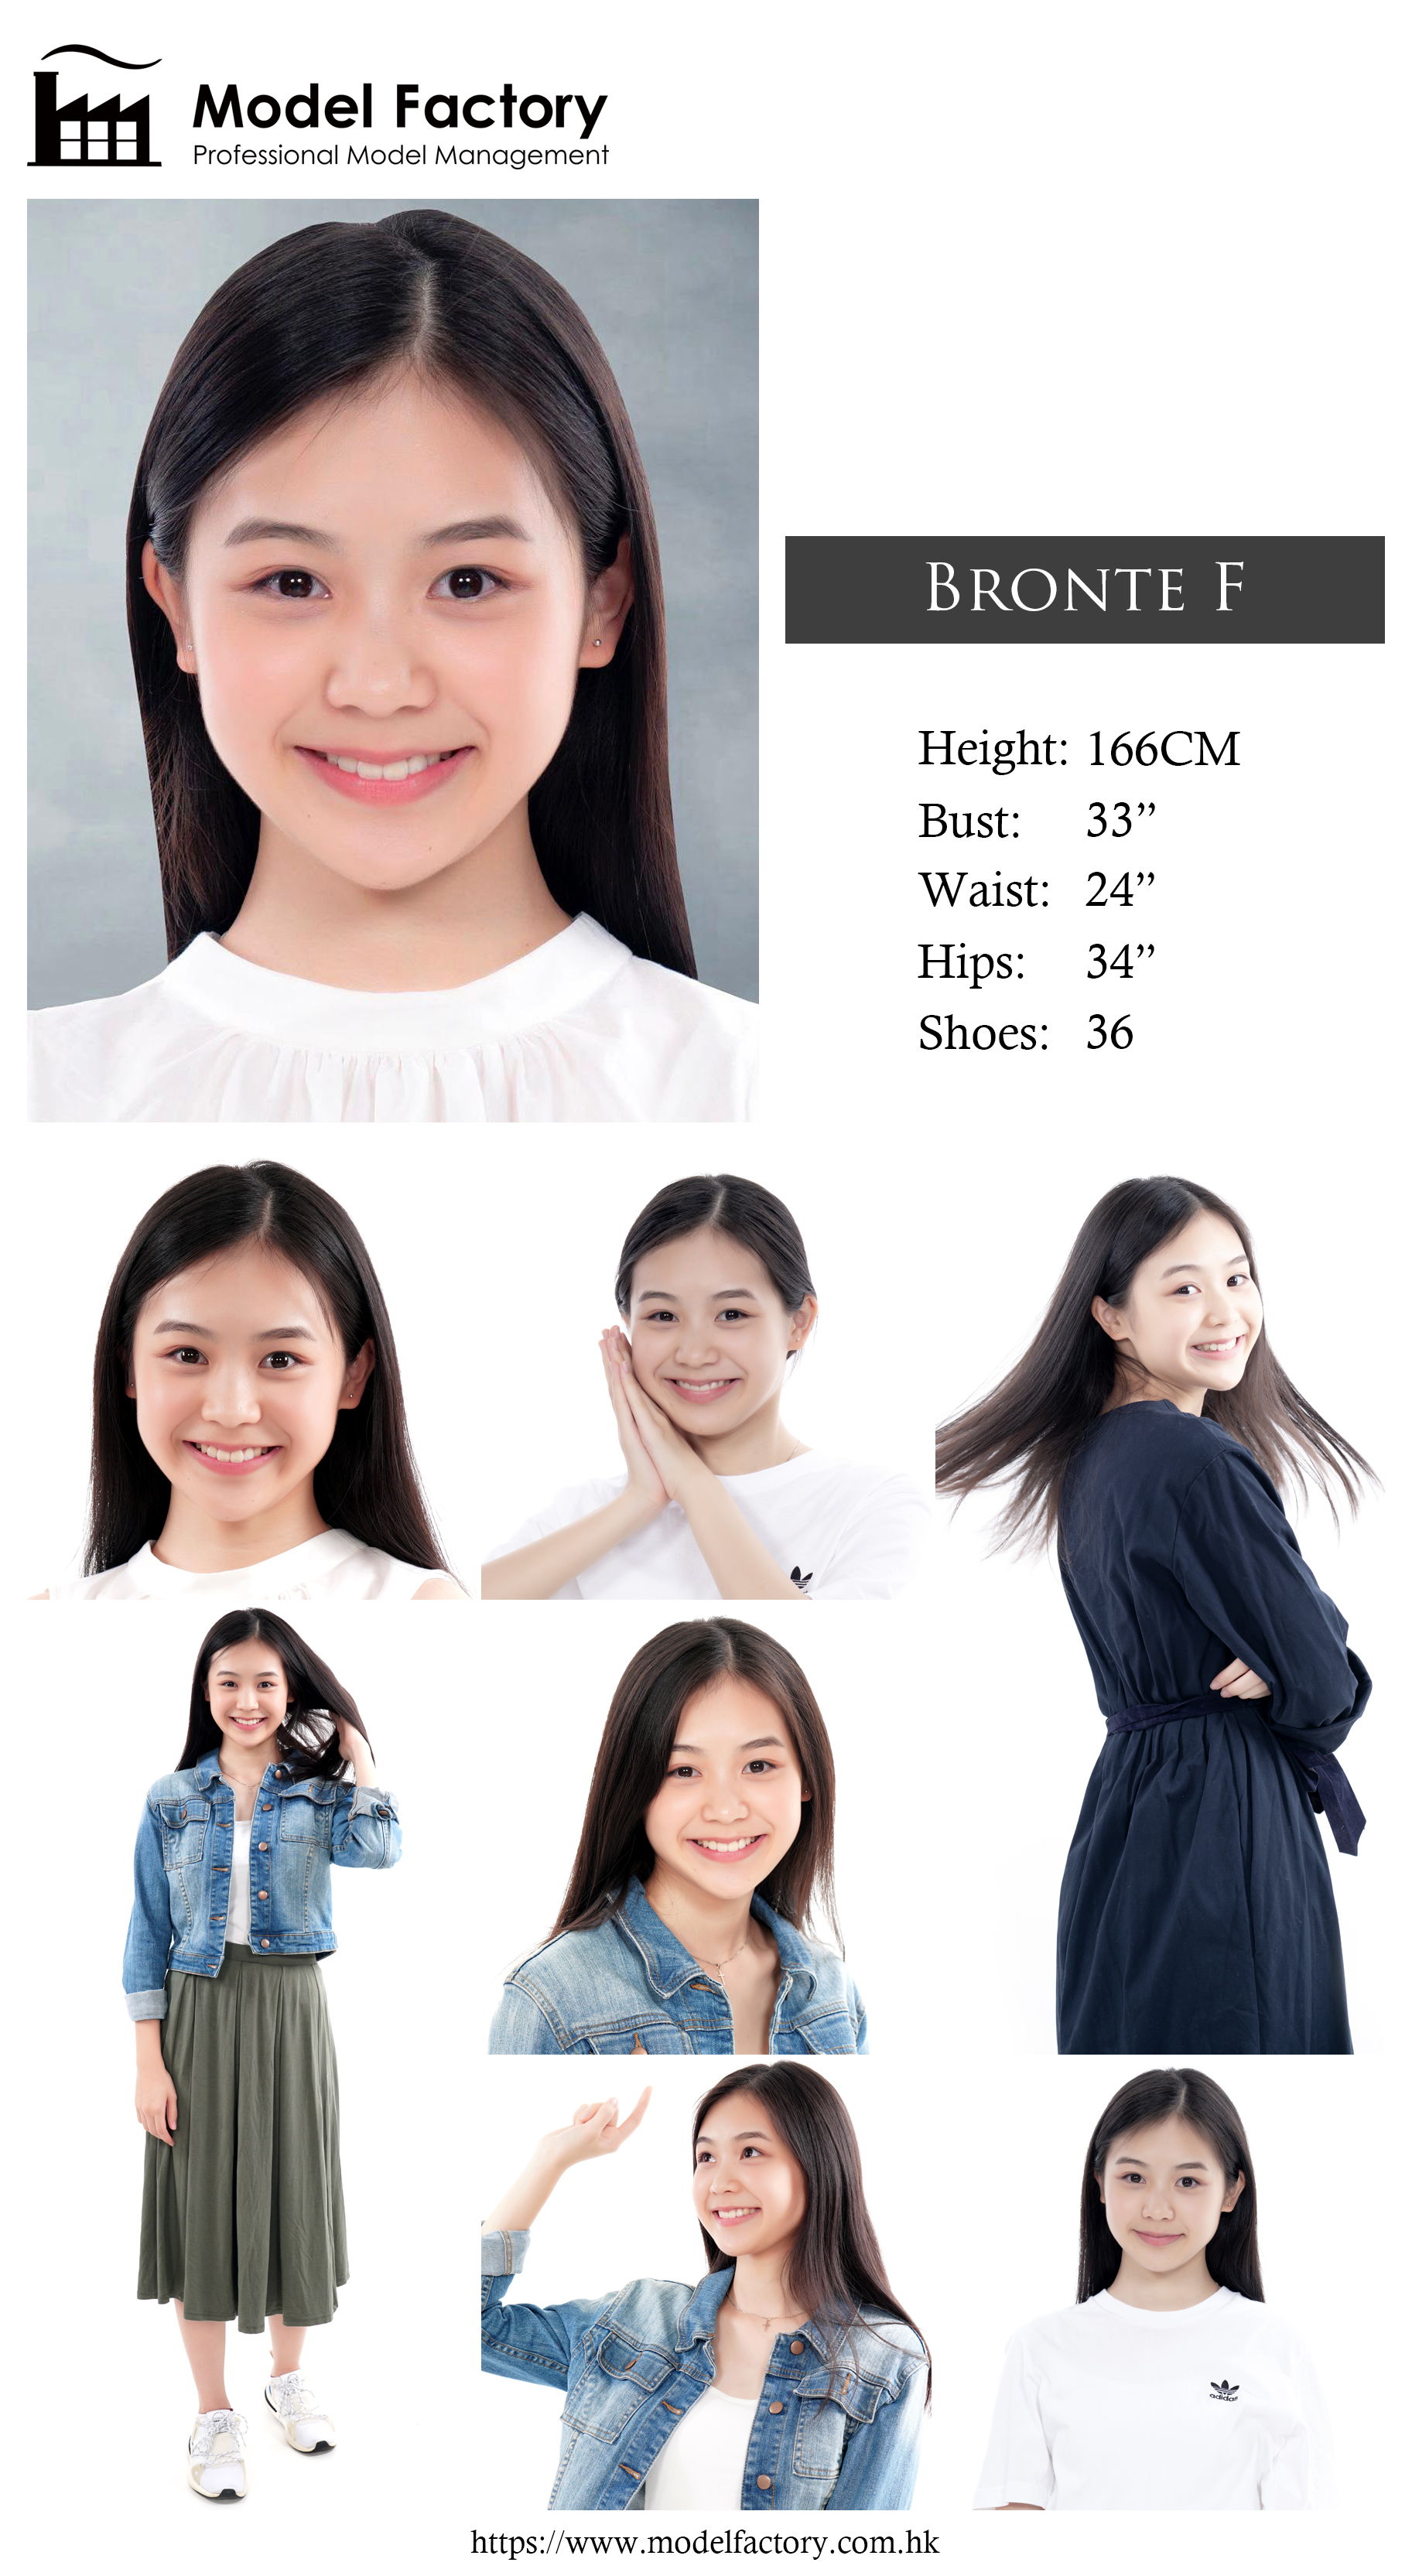 Model Factory Hong Kong Female Model BronteF